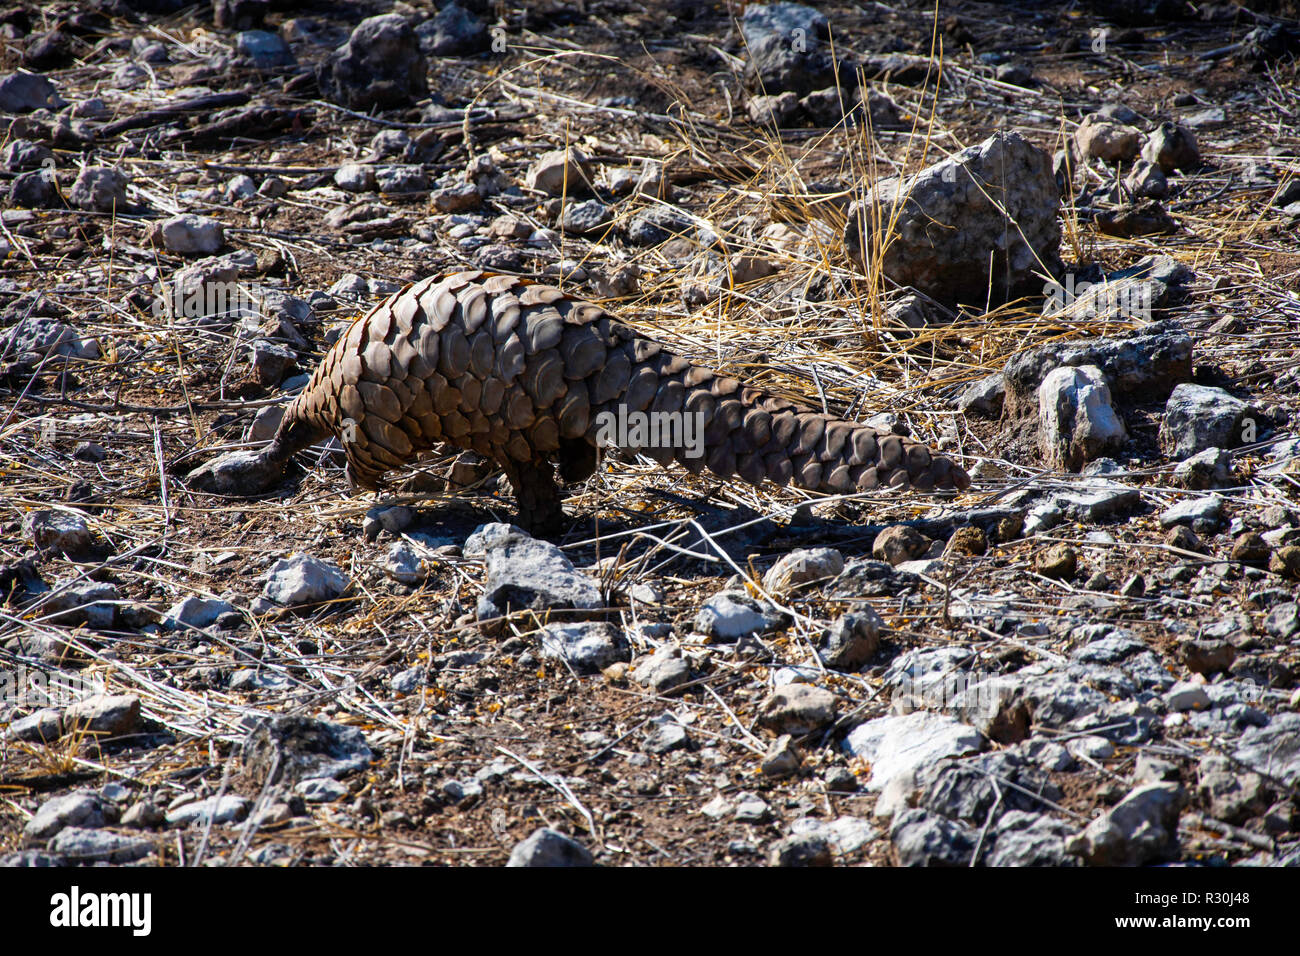 A Cape or Groiund Pangolin (Smutsia temminckii) forages for food in Namibia. - Stock Image